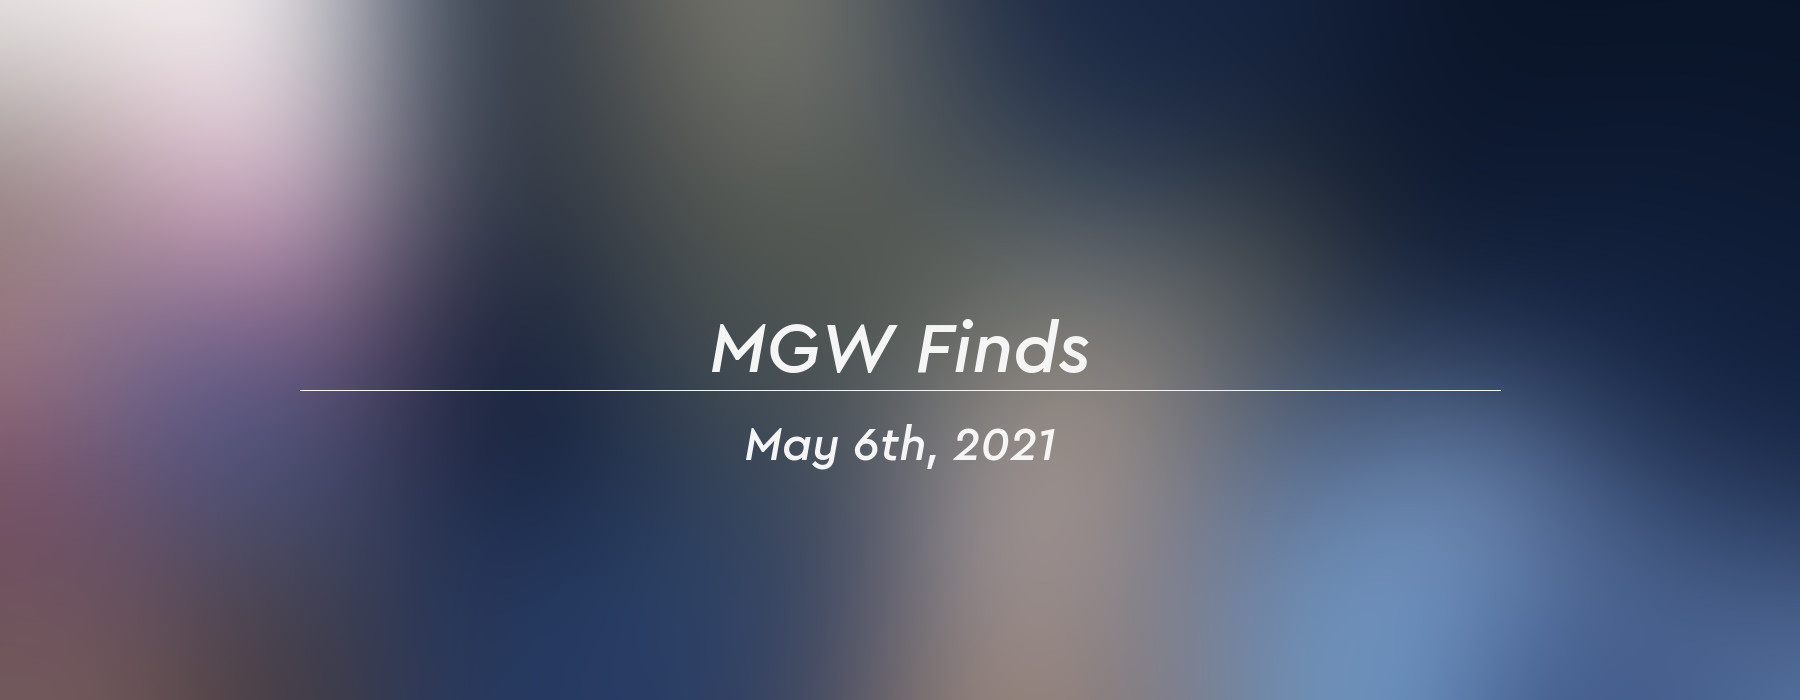 mgw finds 2021 05 06 header